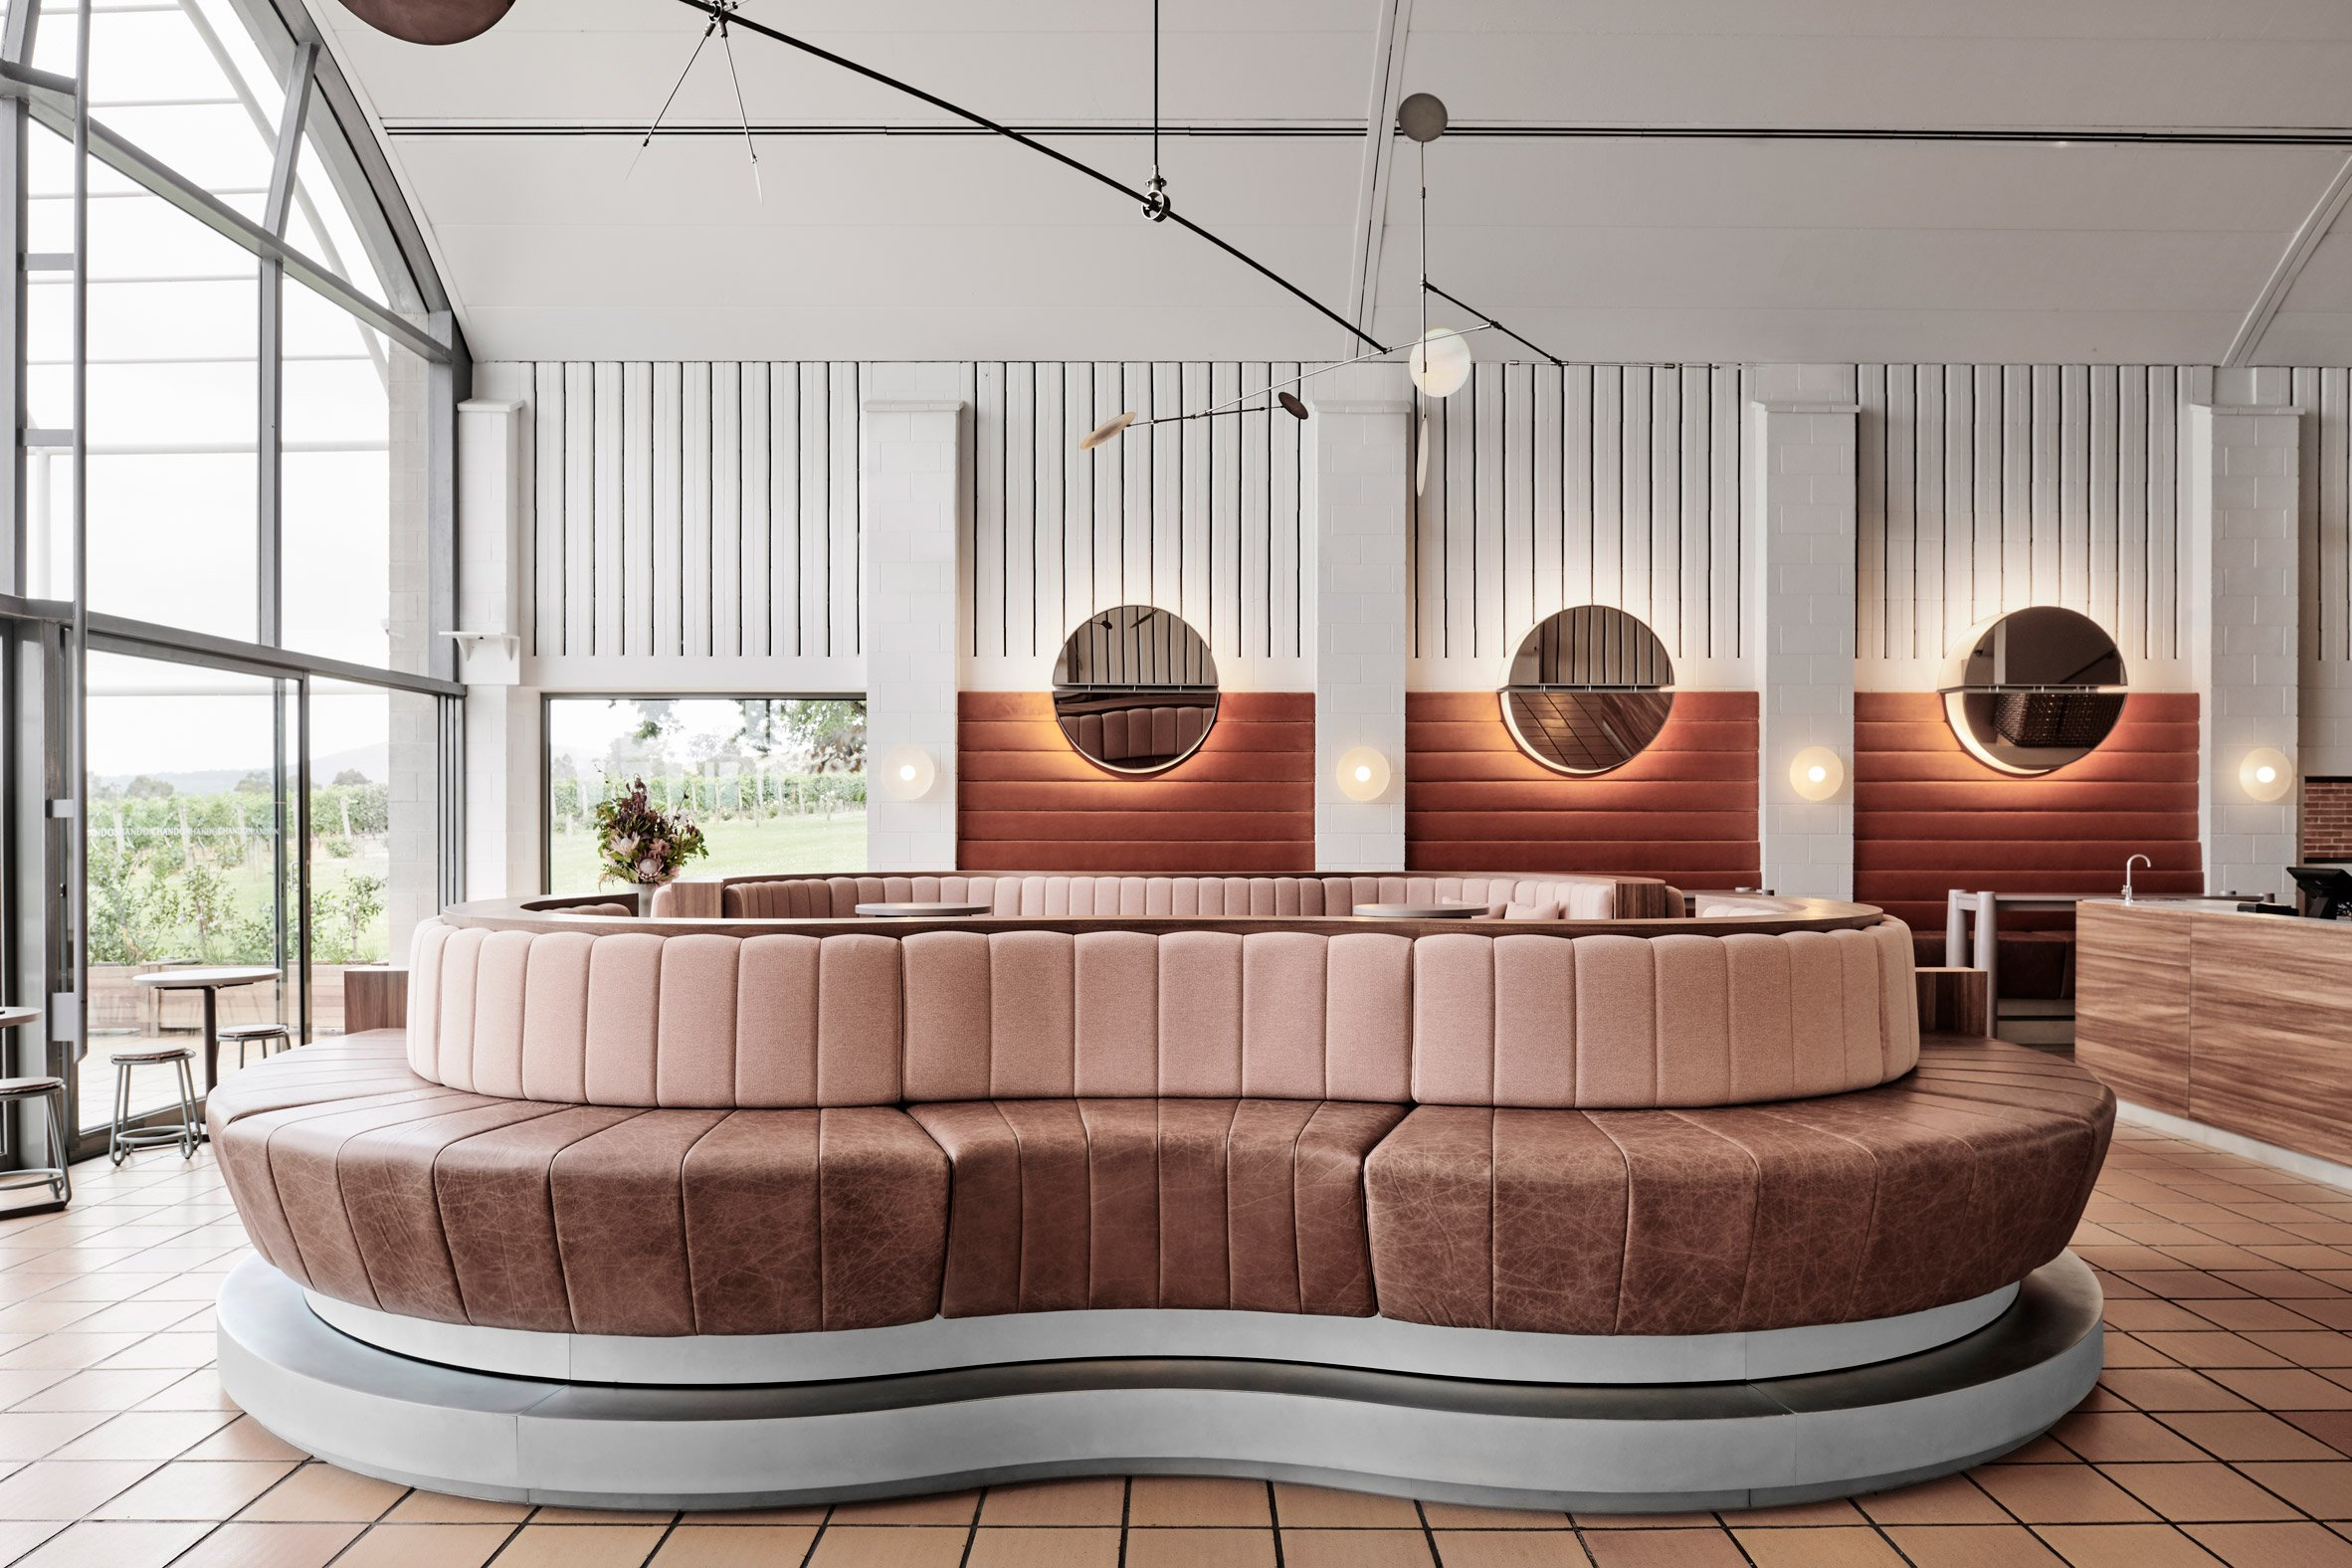 Foolscap Studios creates wine-themed interiors for Domaine Chandon bar in Australia's Yarra Valley